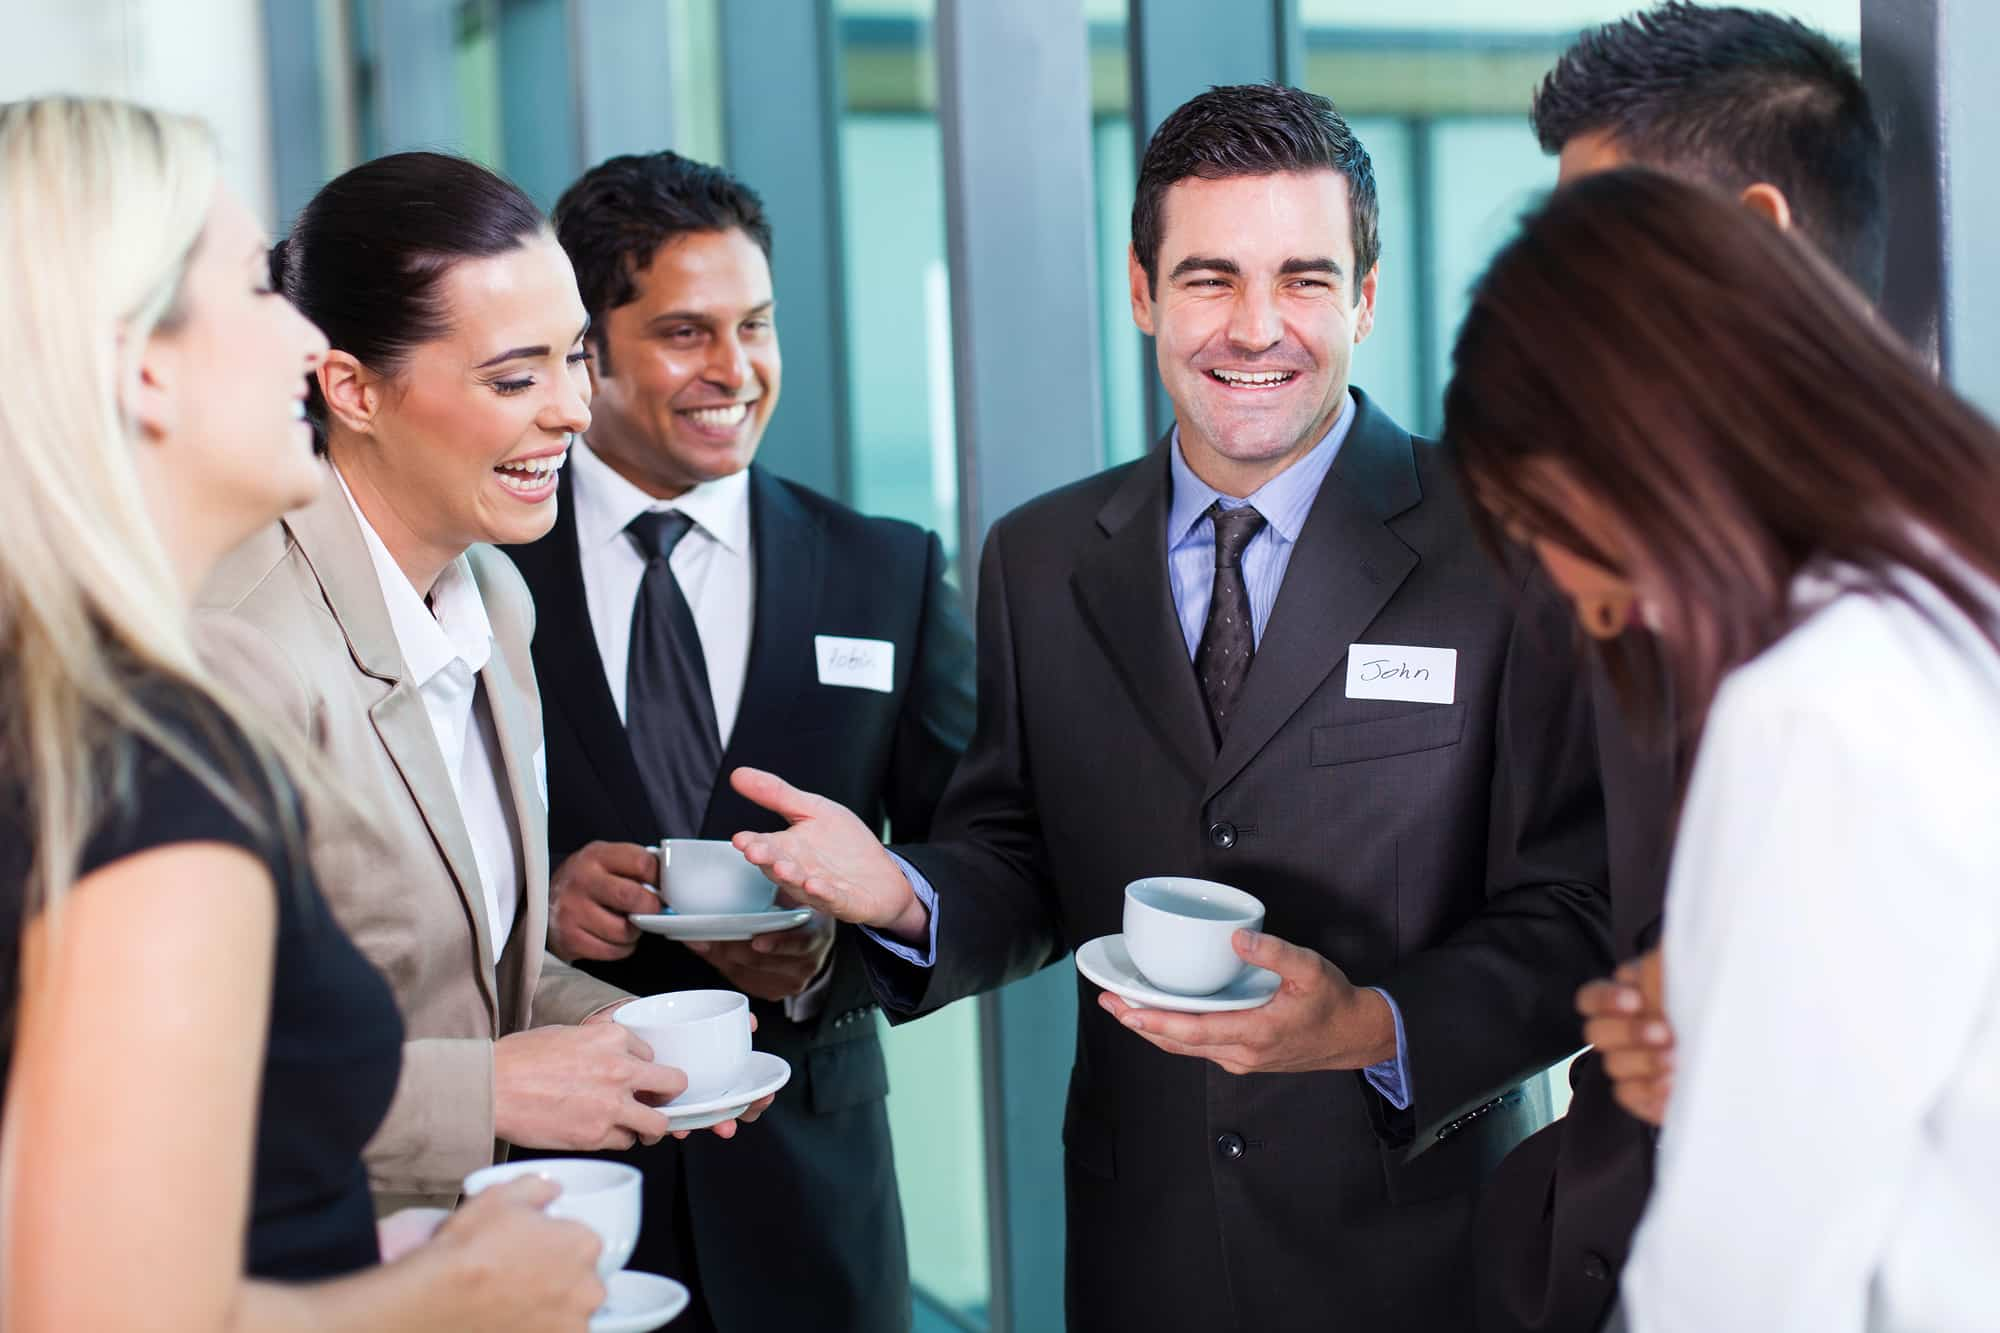 How Is Networking Important In The Growth Of Any Business And How Can We Practice It?